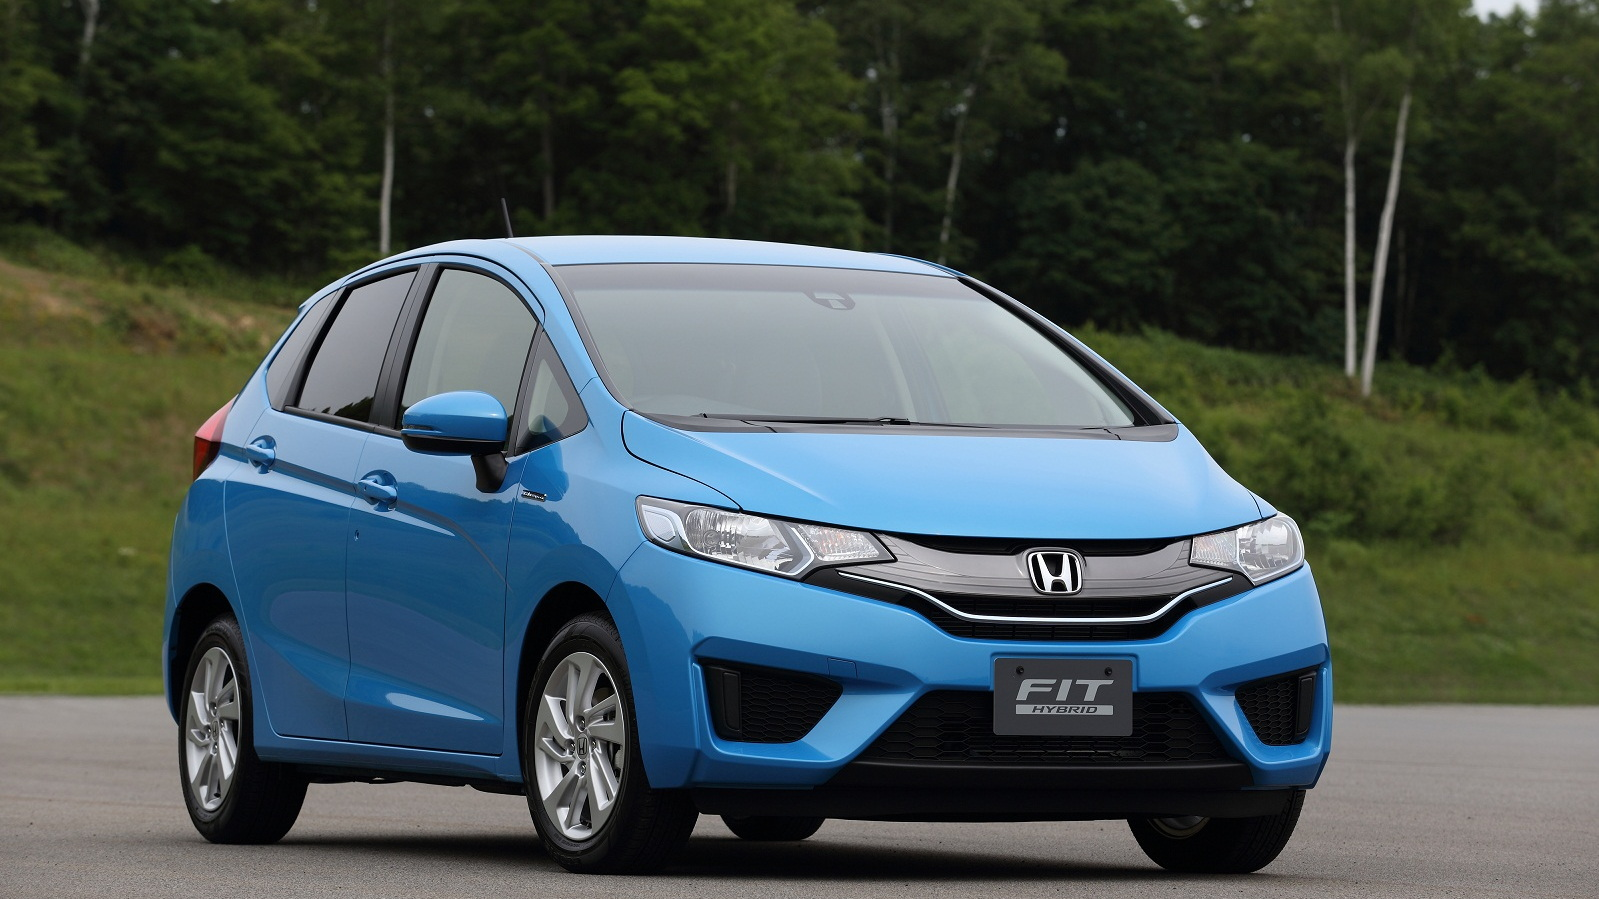 New Honda Fit Hybrid (Japan-only model)